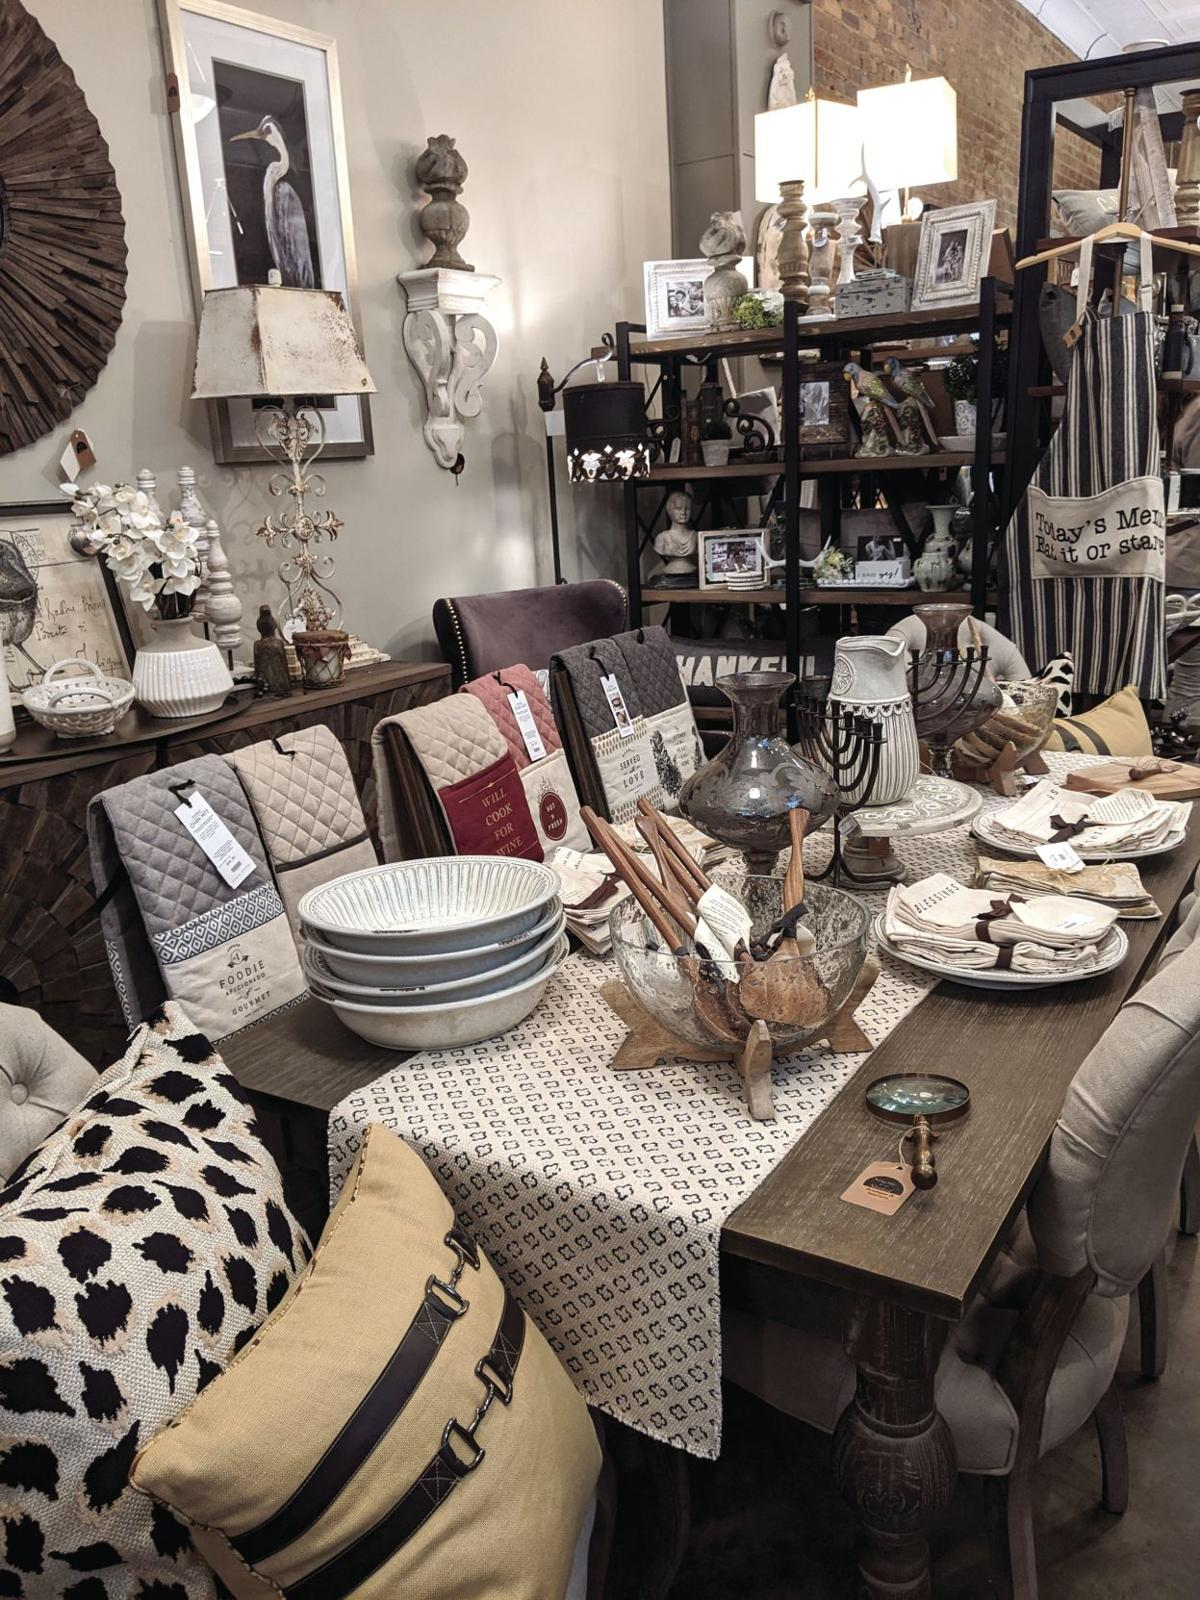 The boutique specializes in home furnishings and carries everything from furniture to wall decor to items for the kitchen.